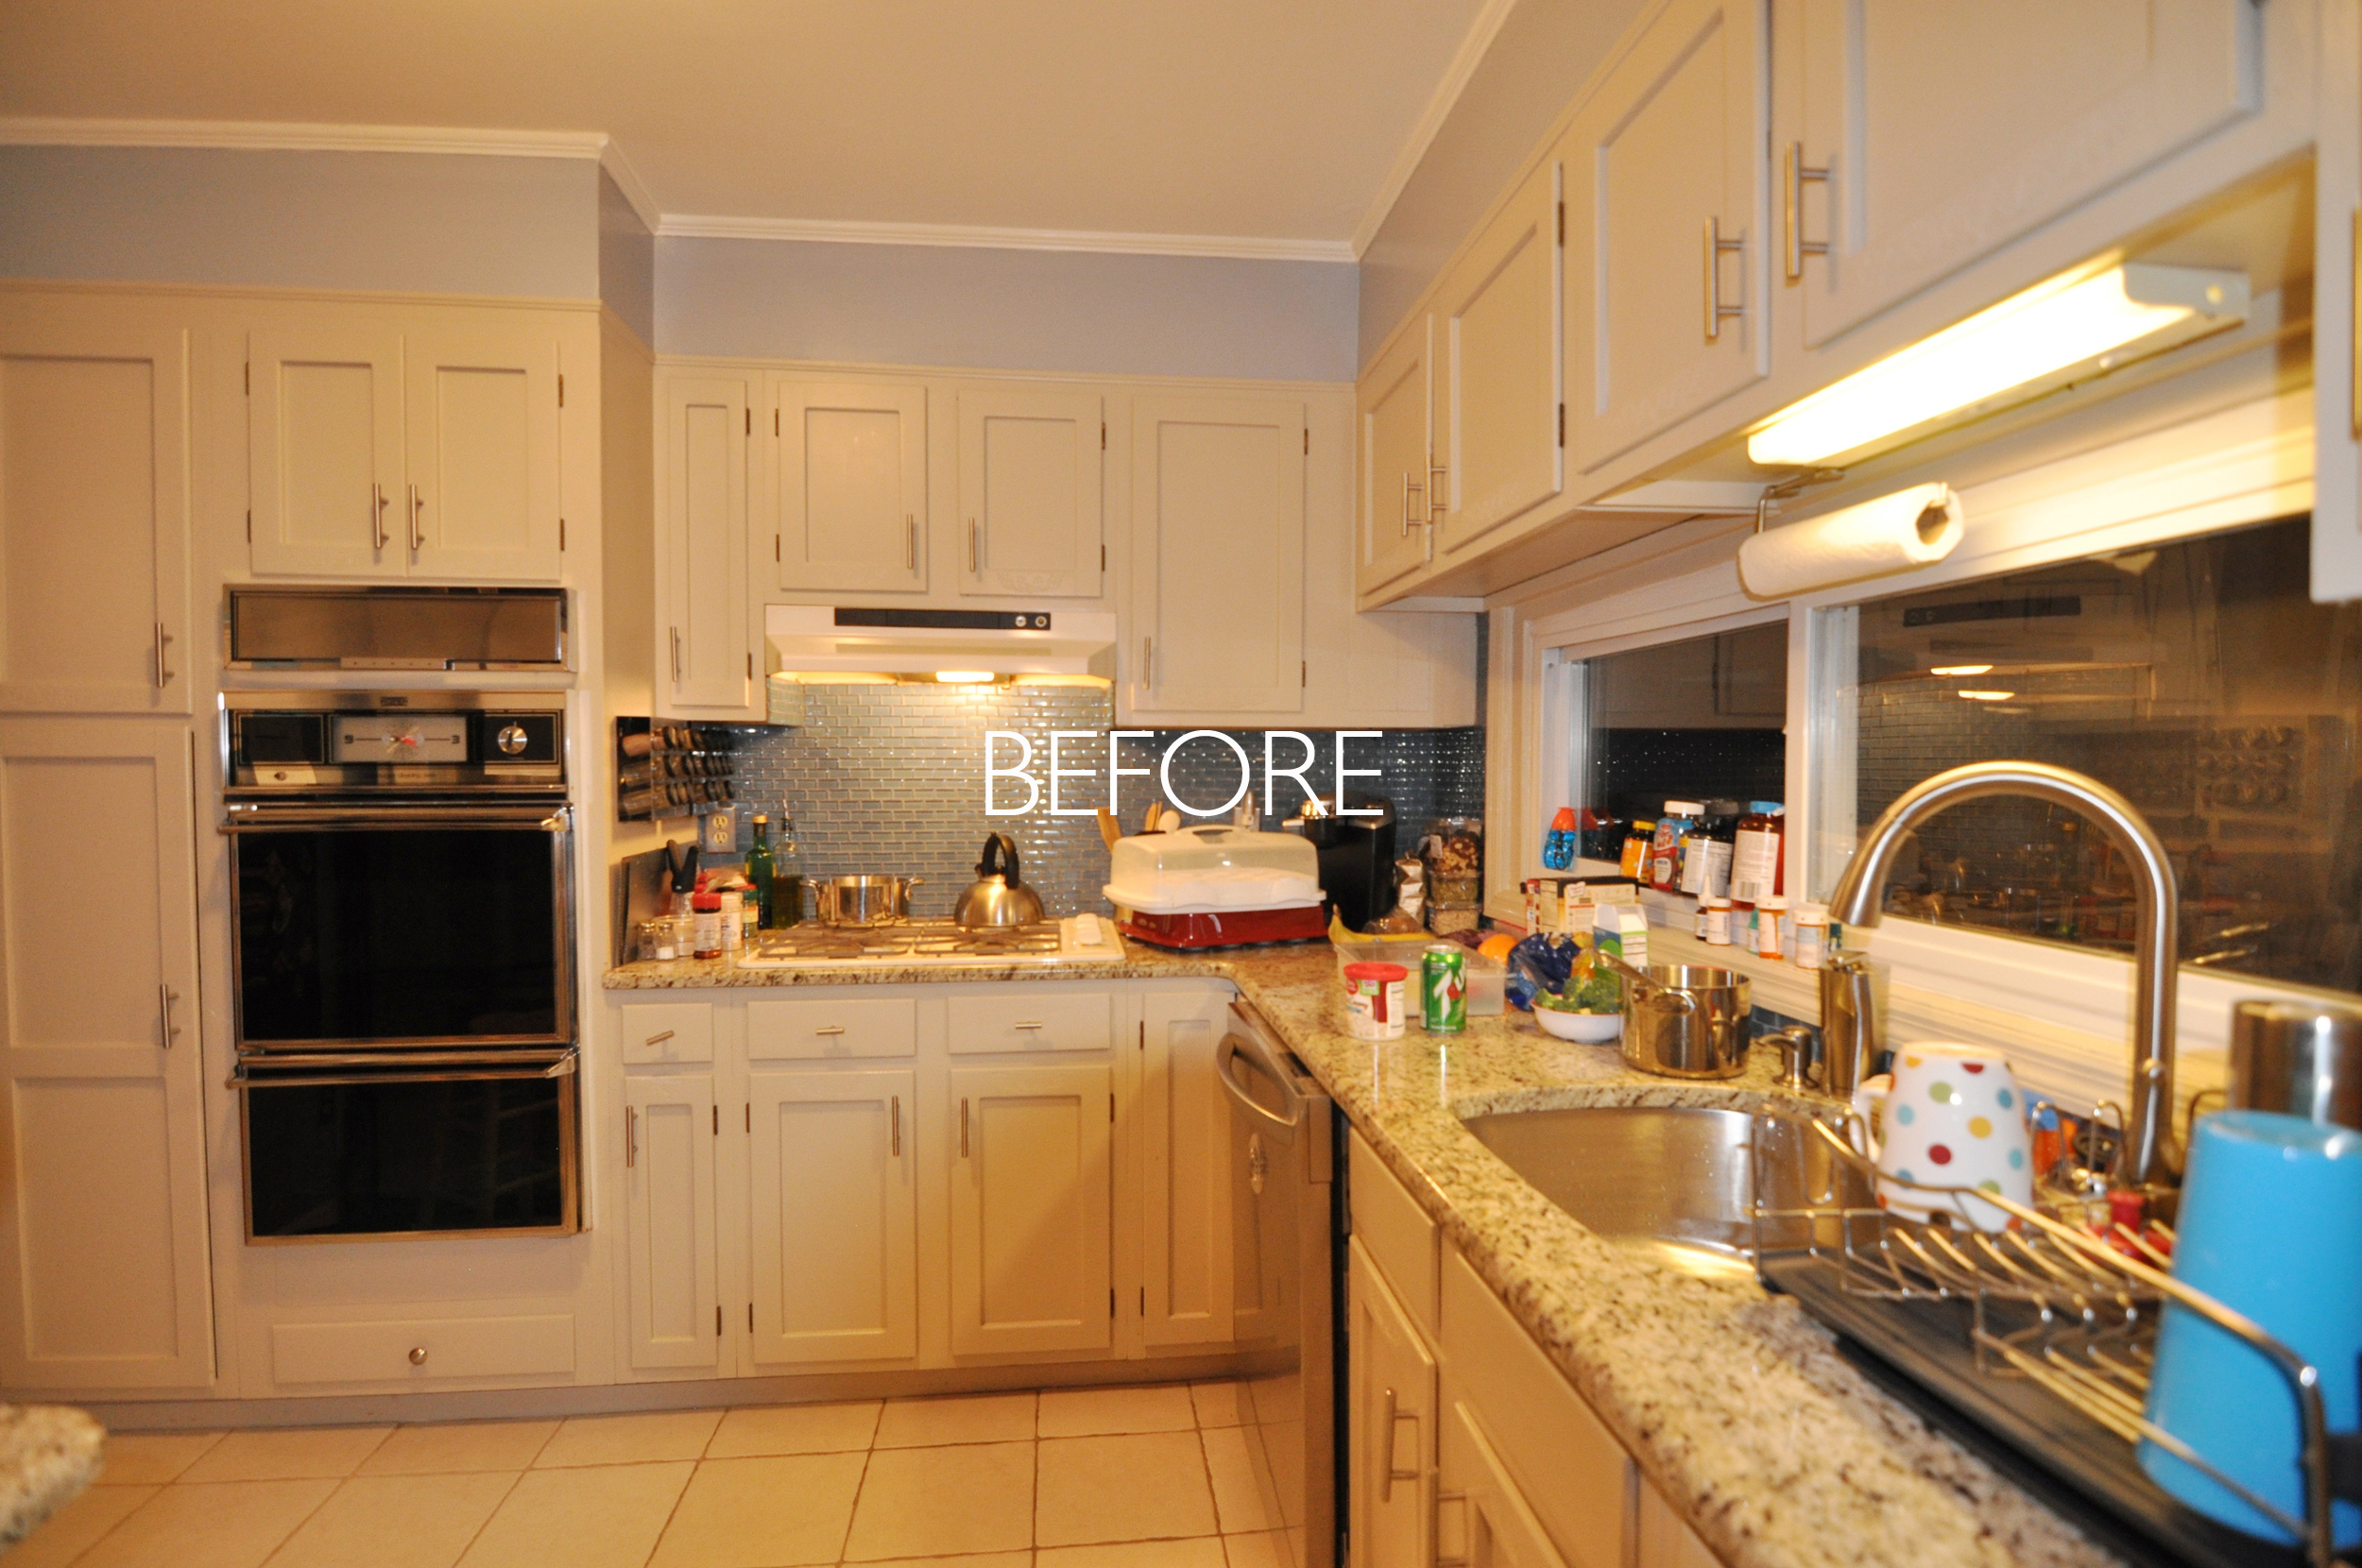 BEFORE Kitchen_HGTV_Buying and Selling with The Property Brothers_Season 5_Episode 3.jpg